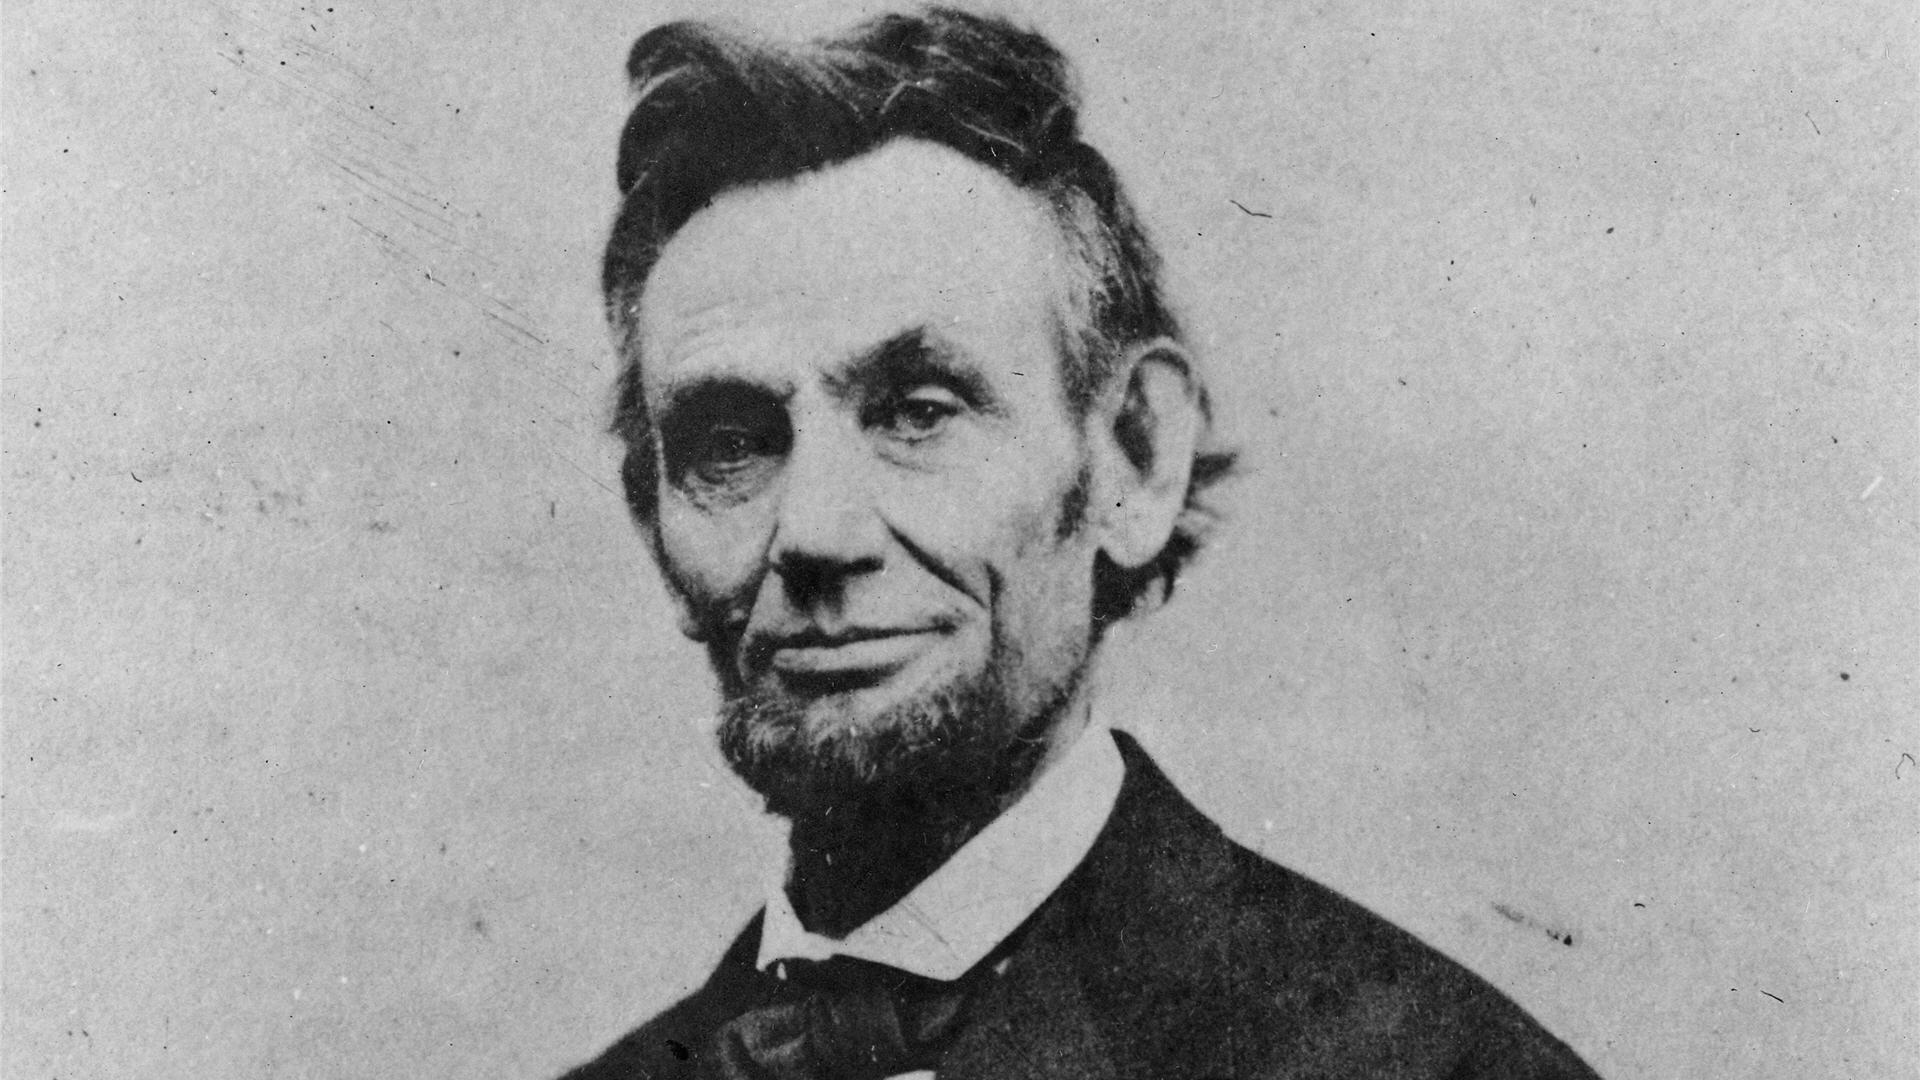 an overview of the greatest accomplishments of abraham lincoln an american president